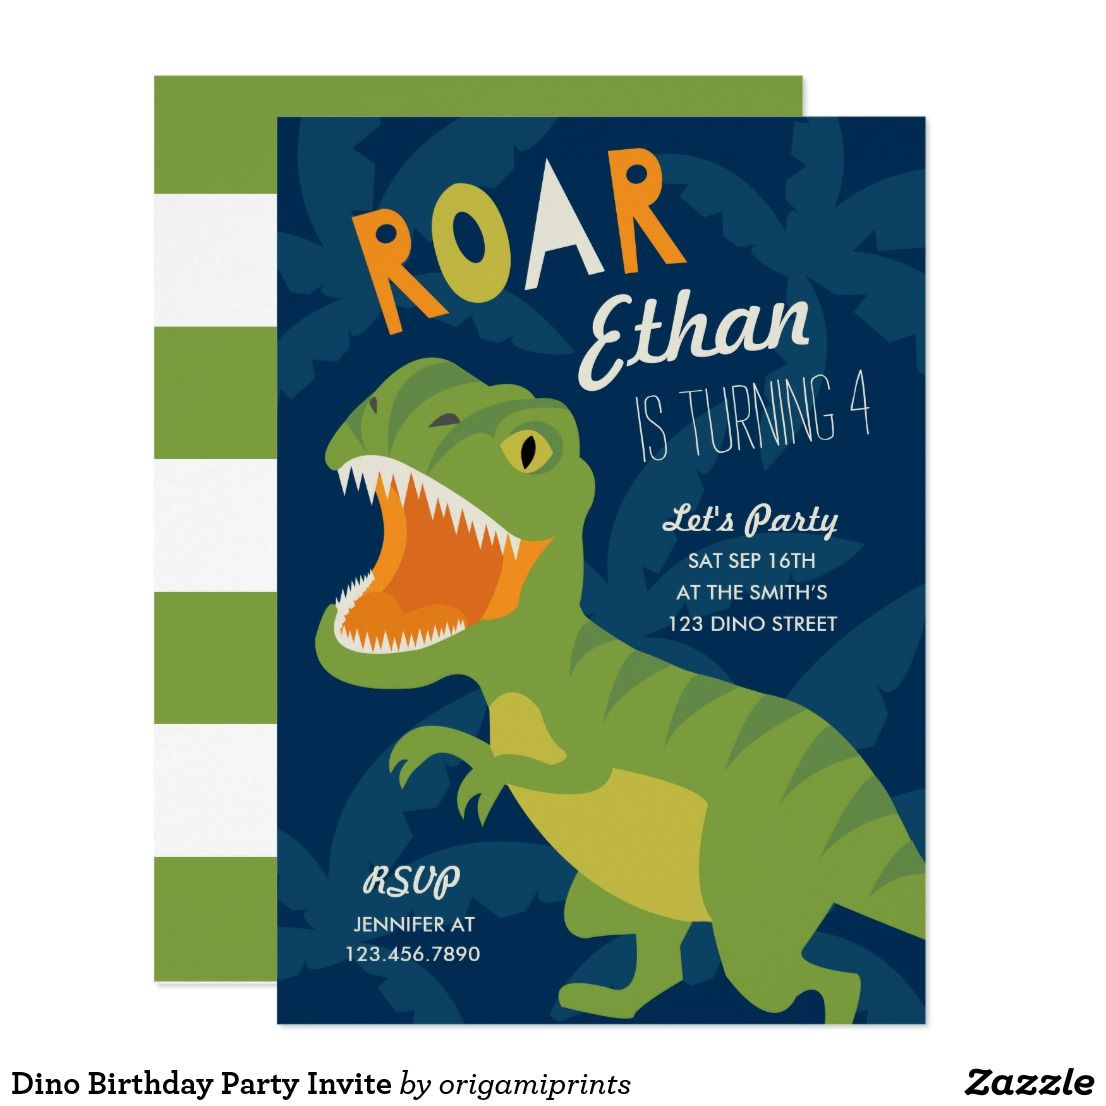 Dino Birthday Party Invite Colorful Dinosaur Themed Invitation That Can Be Personalized With Your Text